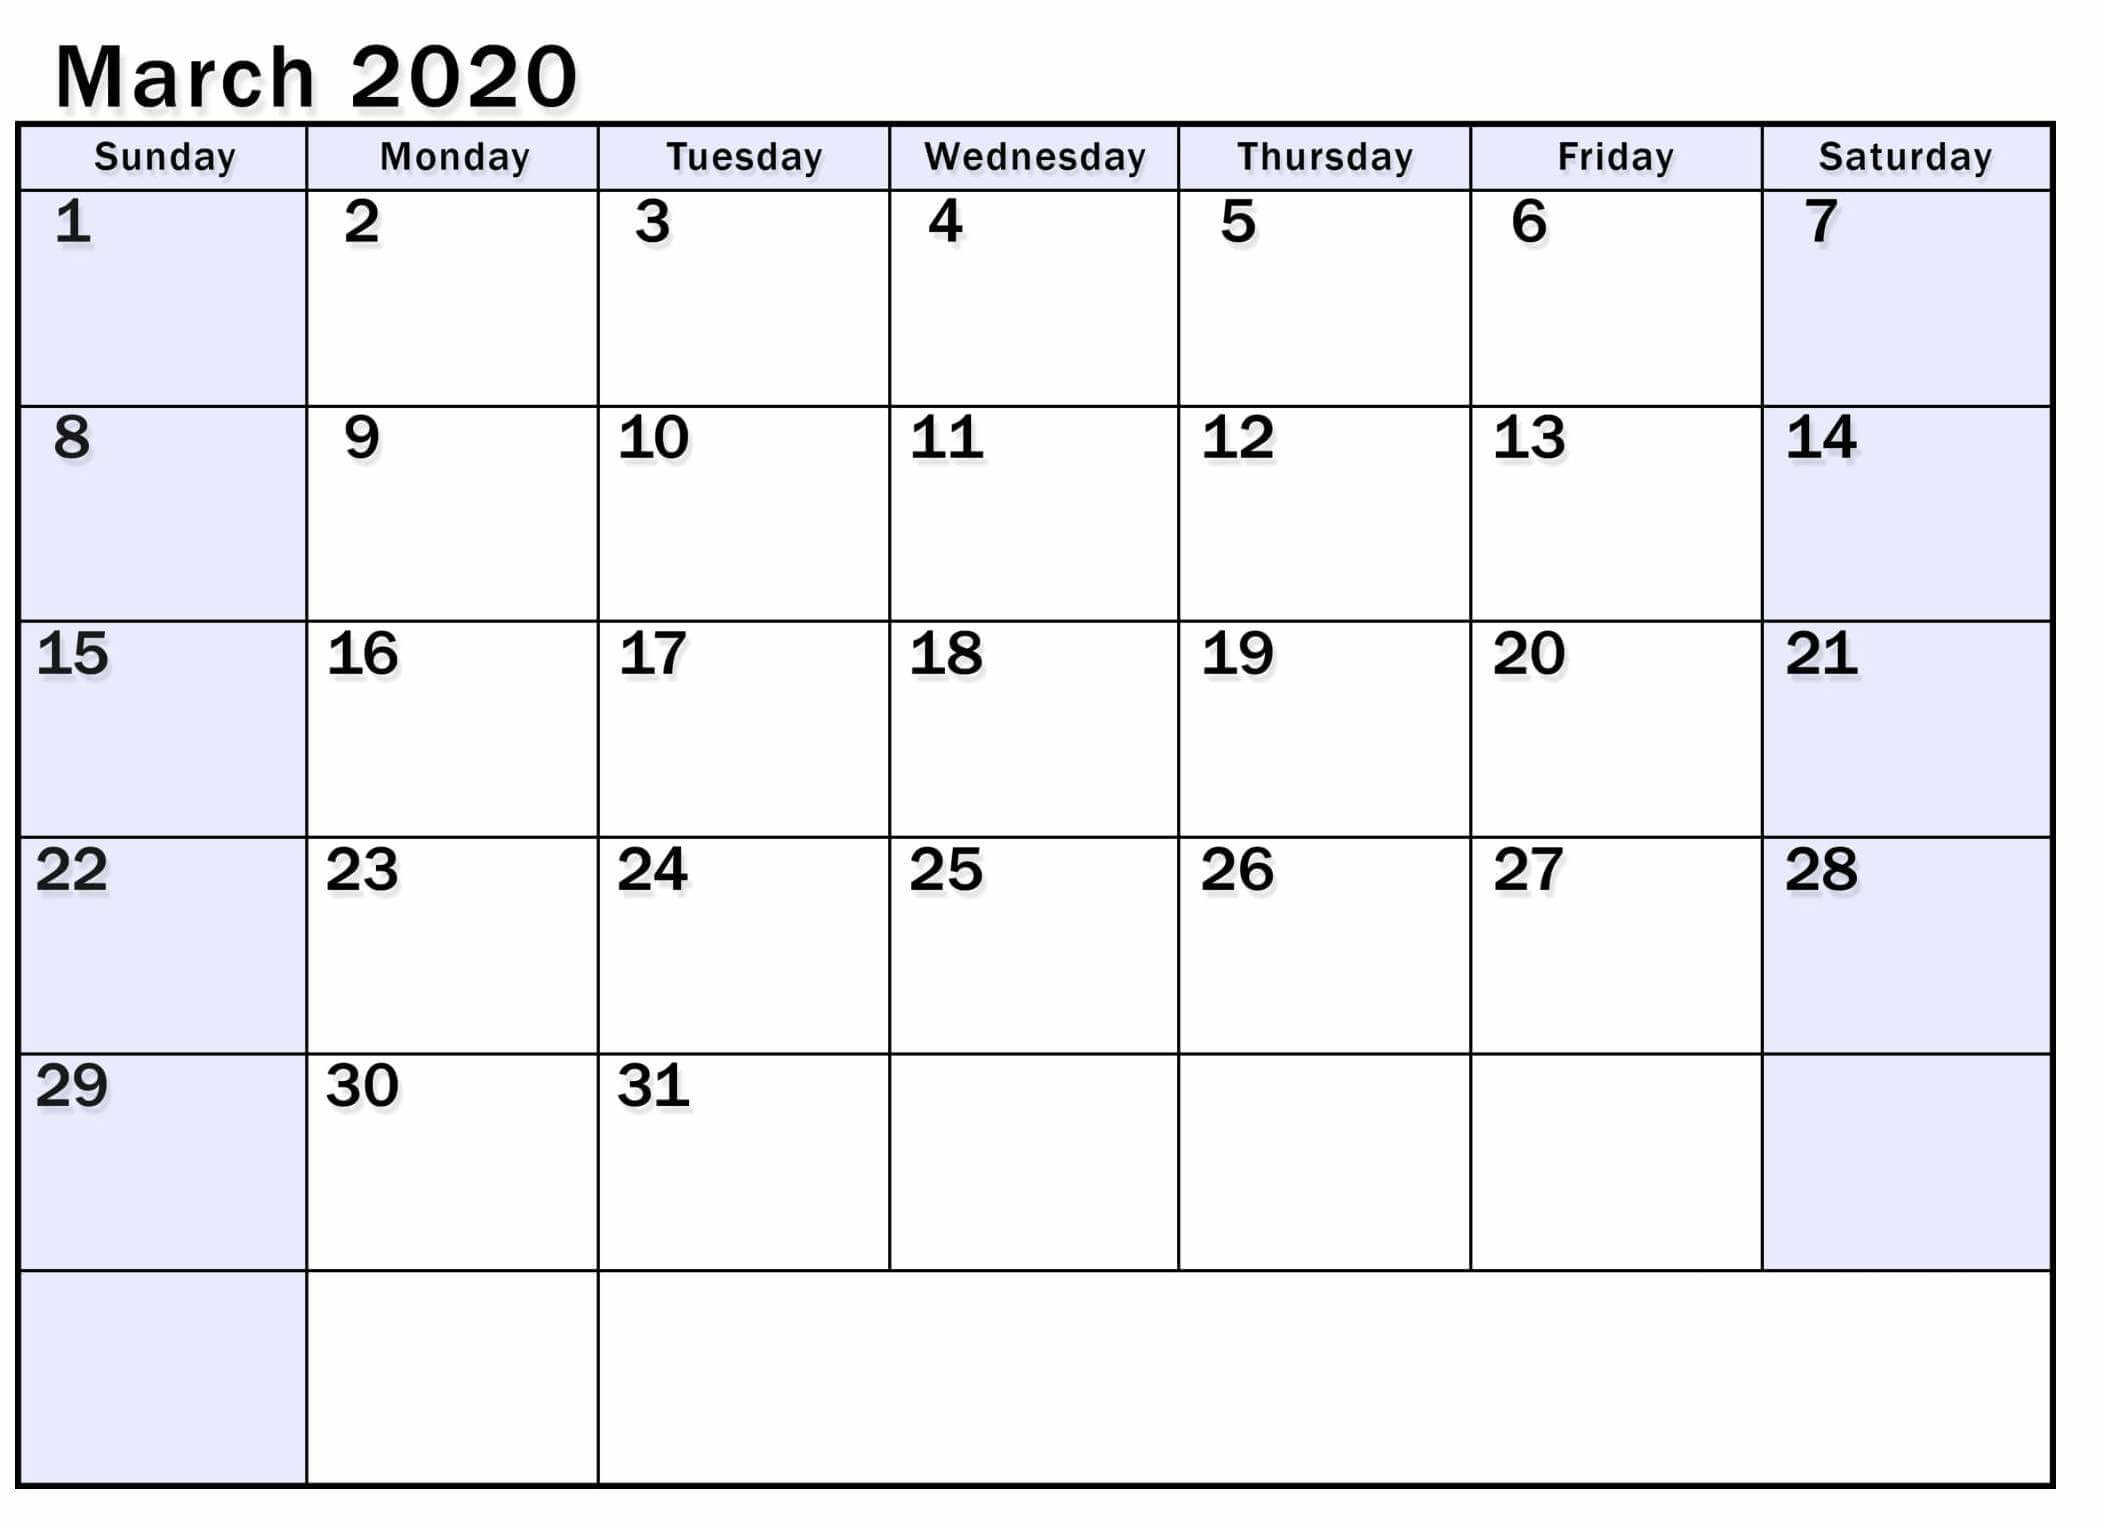 March 2020 Calendar For UK